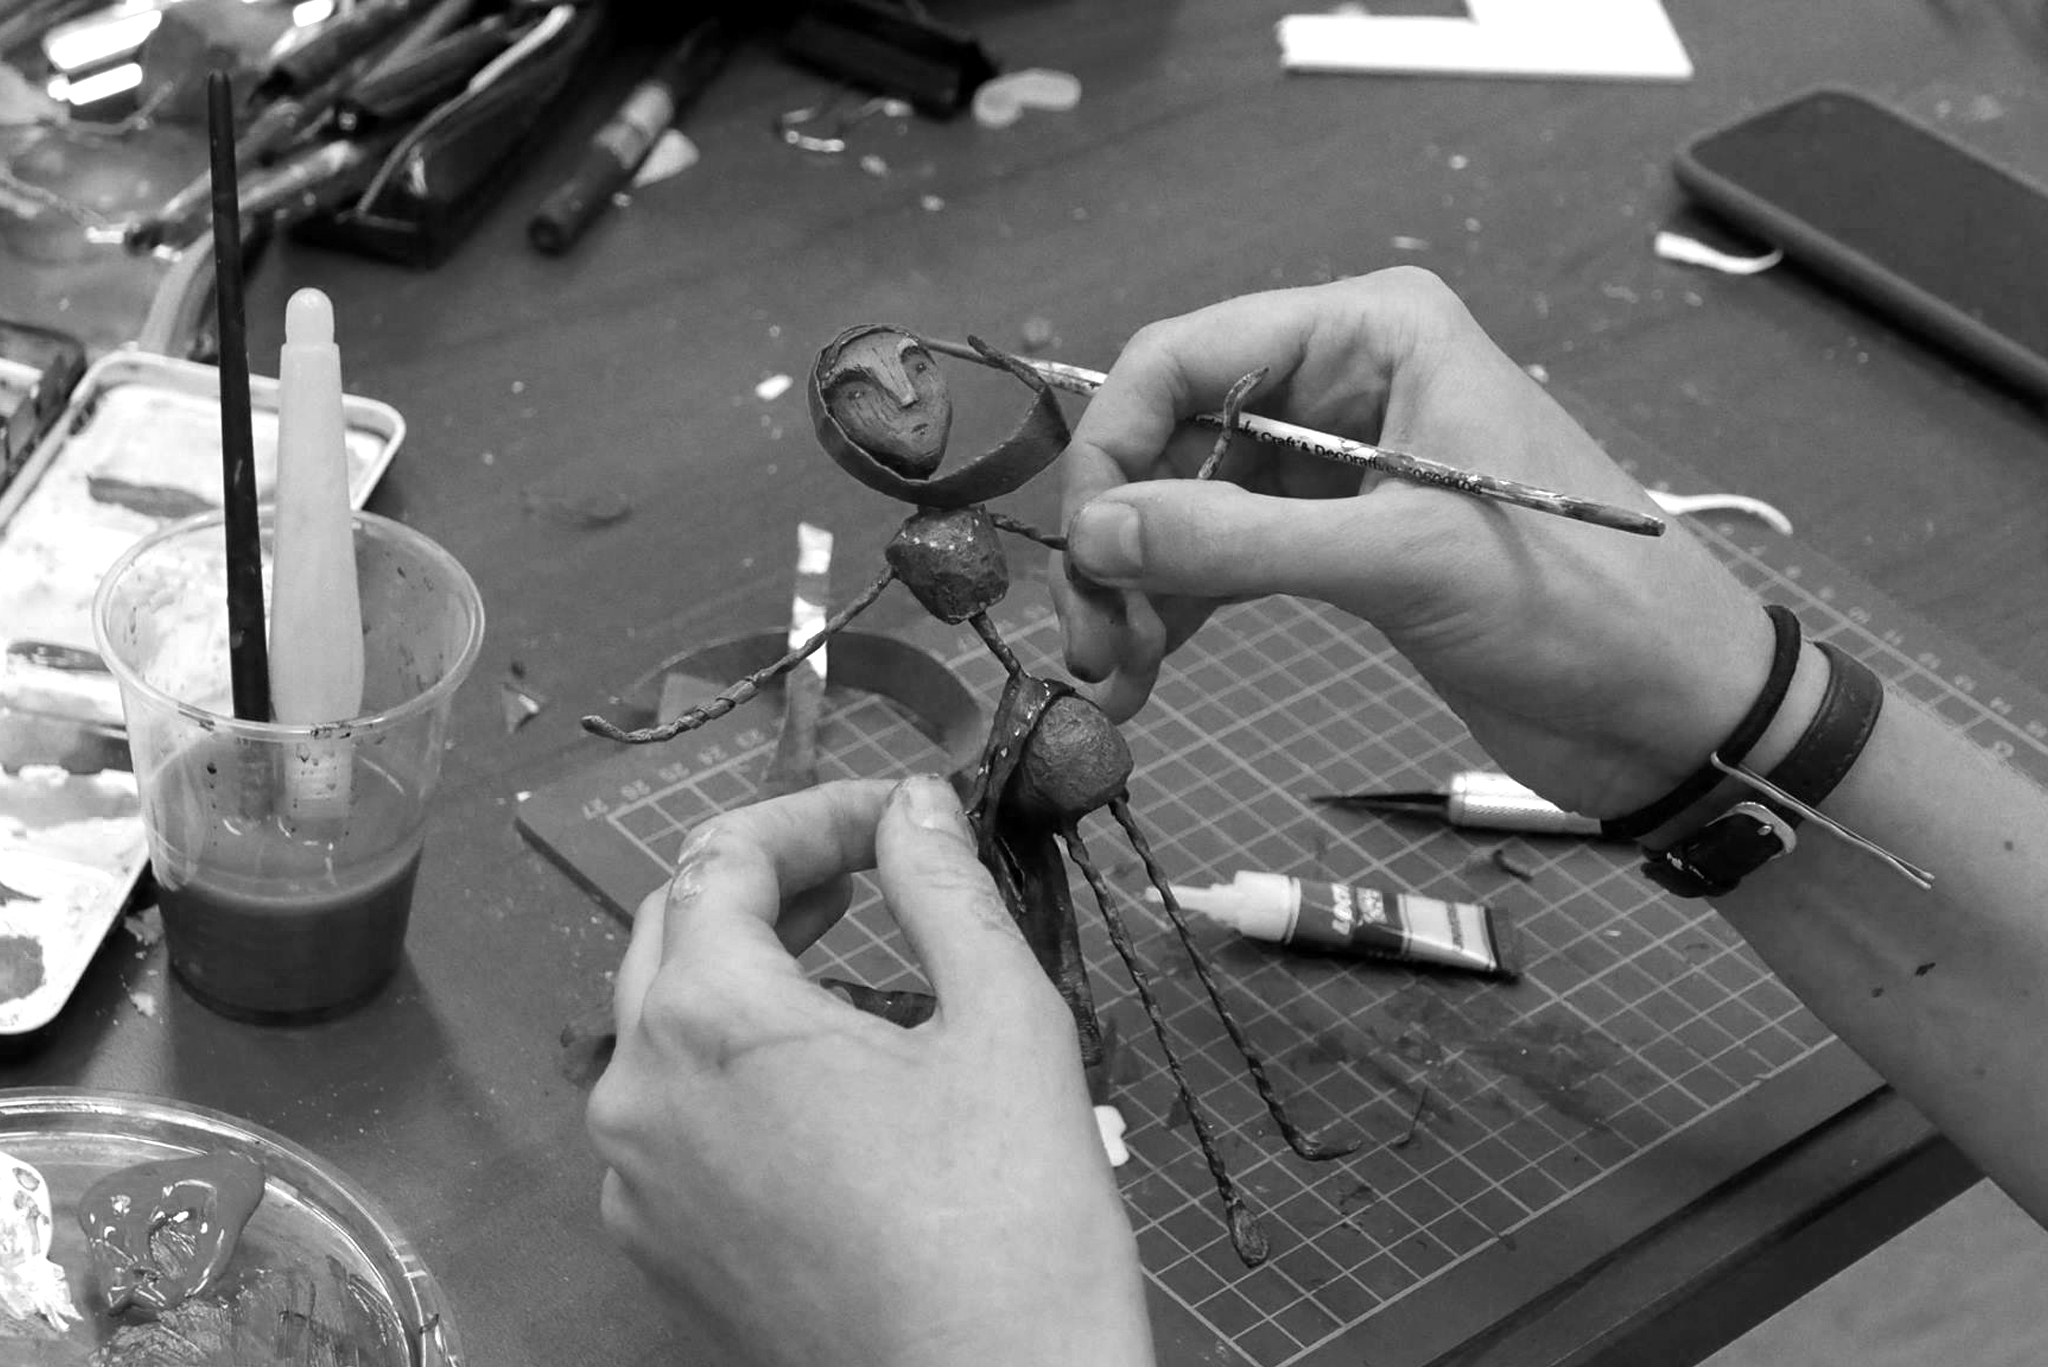 Péter and Joseph's World of Stop Motion